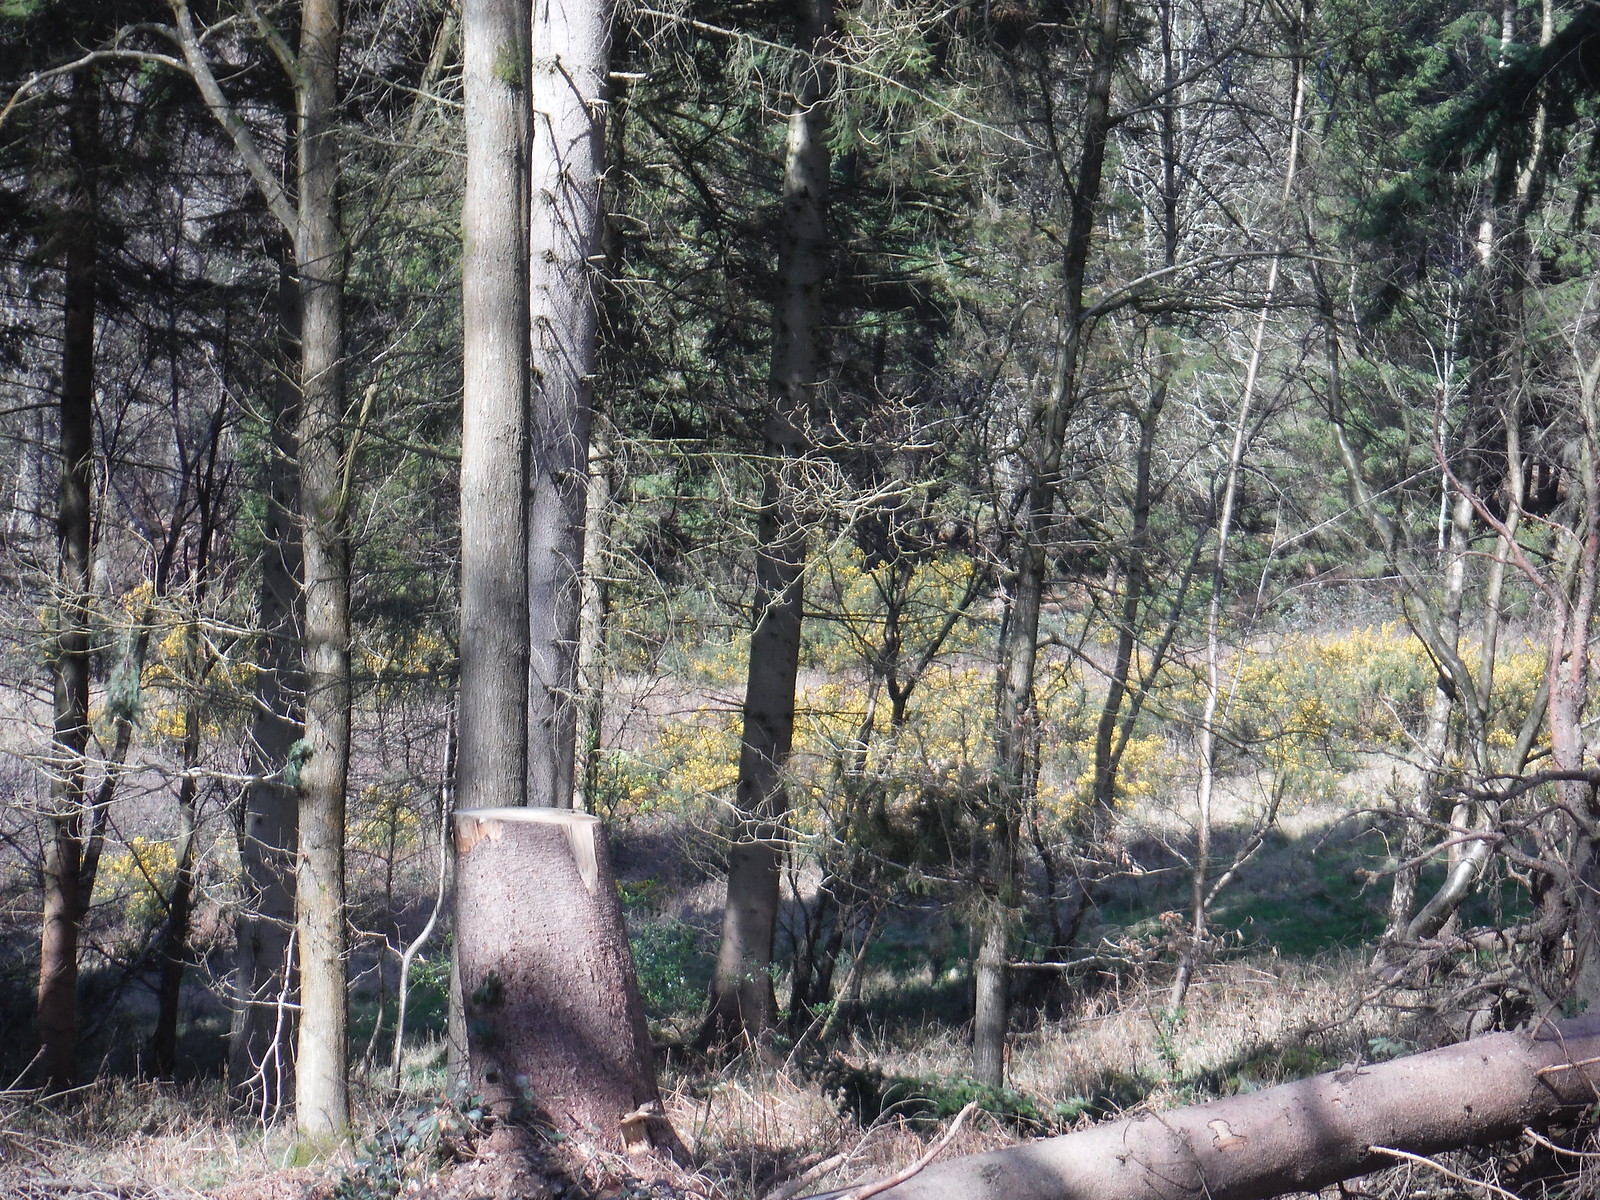 Burgess Copse (II) SWC Walk 260 Aldermaston to Woolhampton [Midgham Station] (via Frilsham)